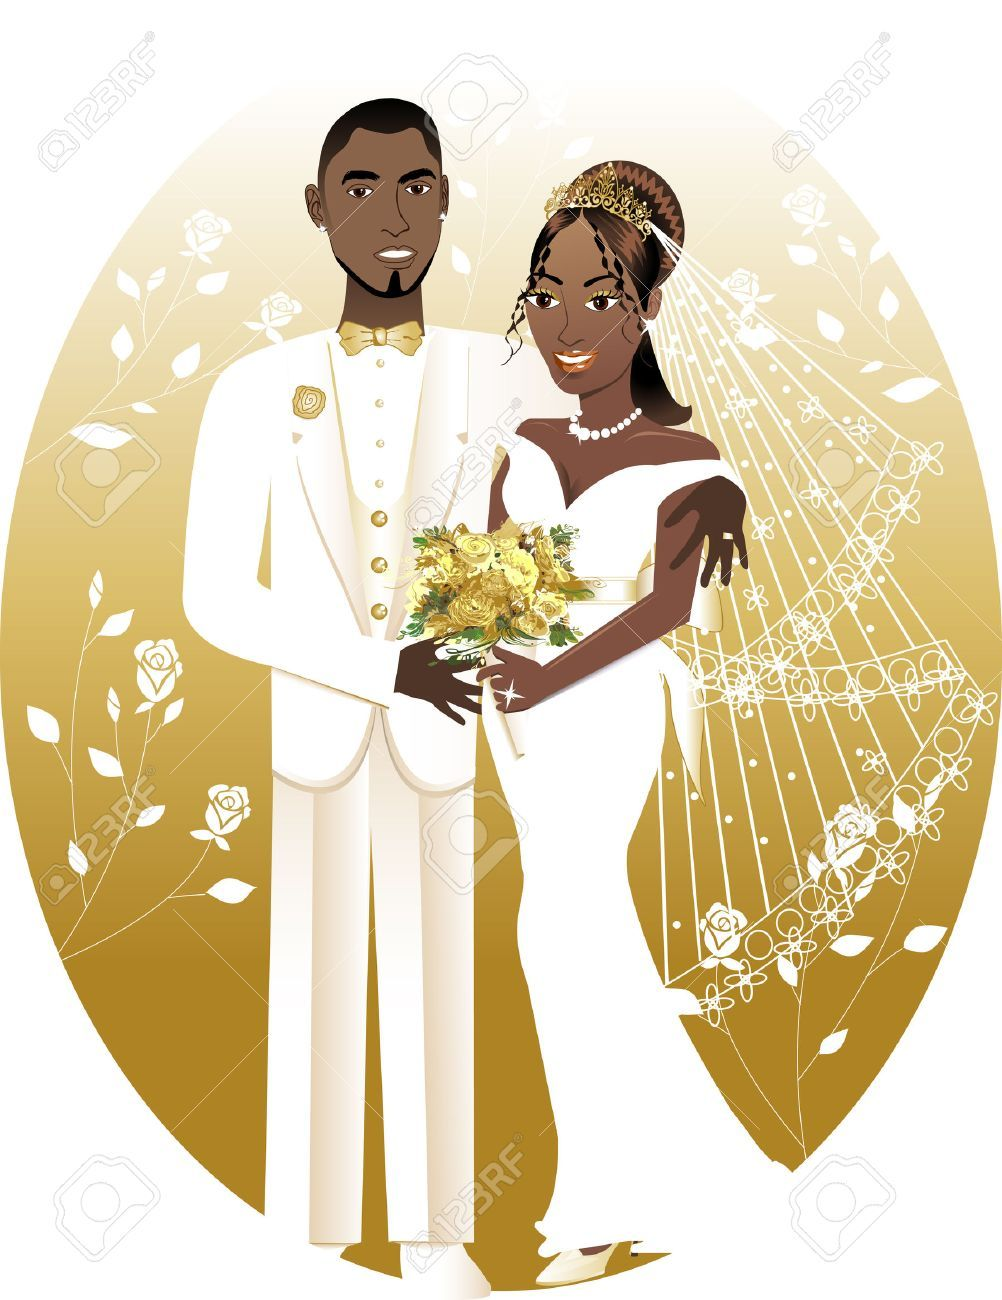 African american bride and groom clipart 6 » Clipart Portal.